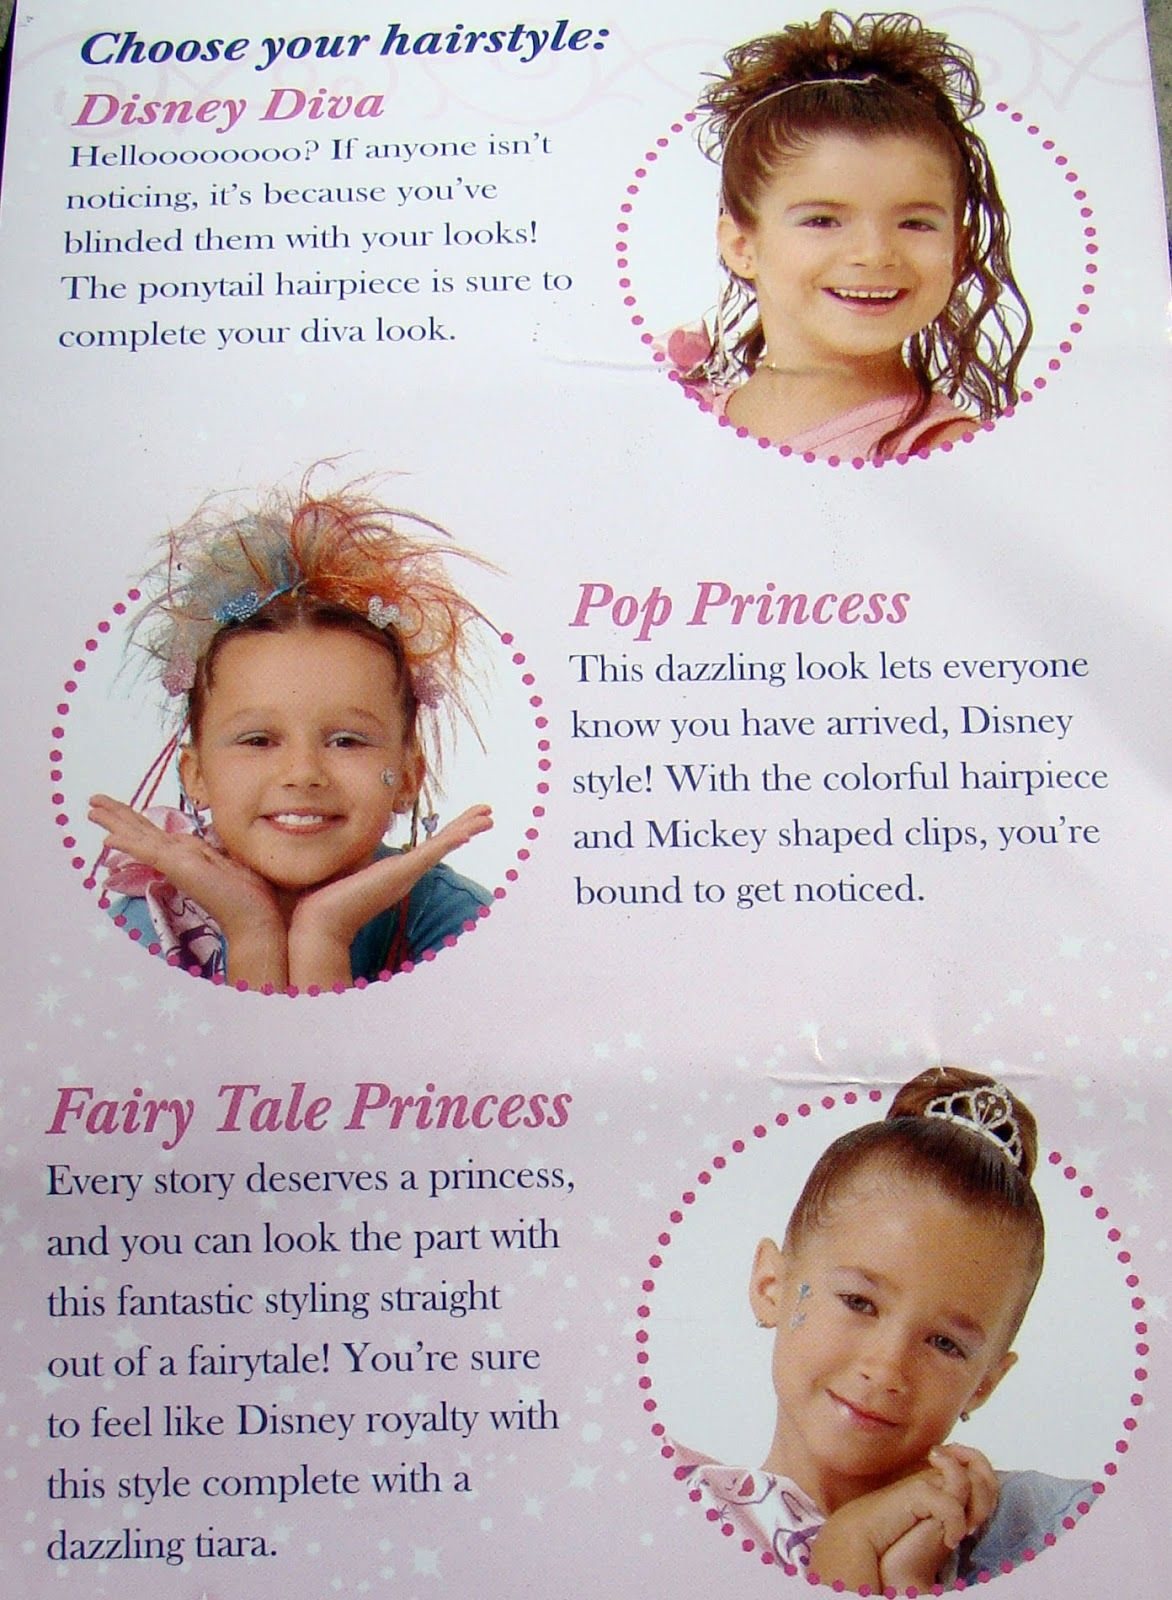 Bibbidi Bobbidi Boutique Hairstyle Options Disney Parks Tips